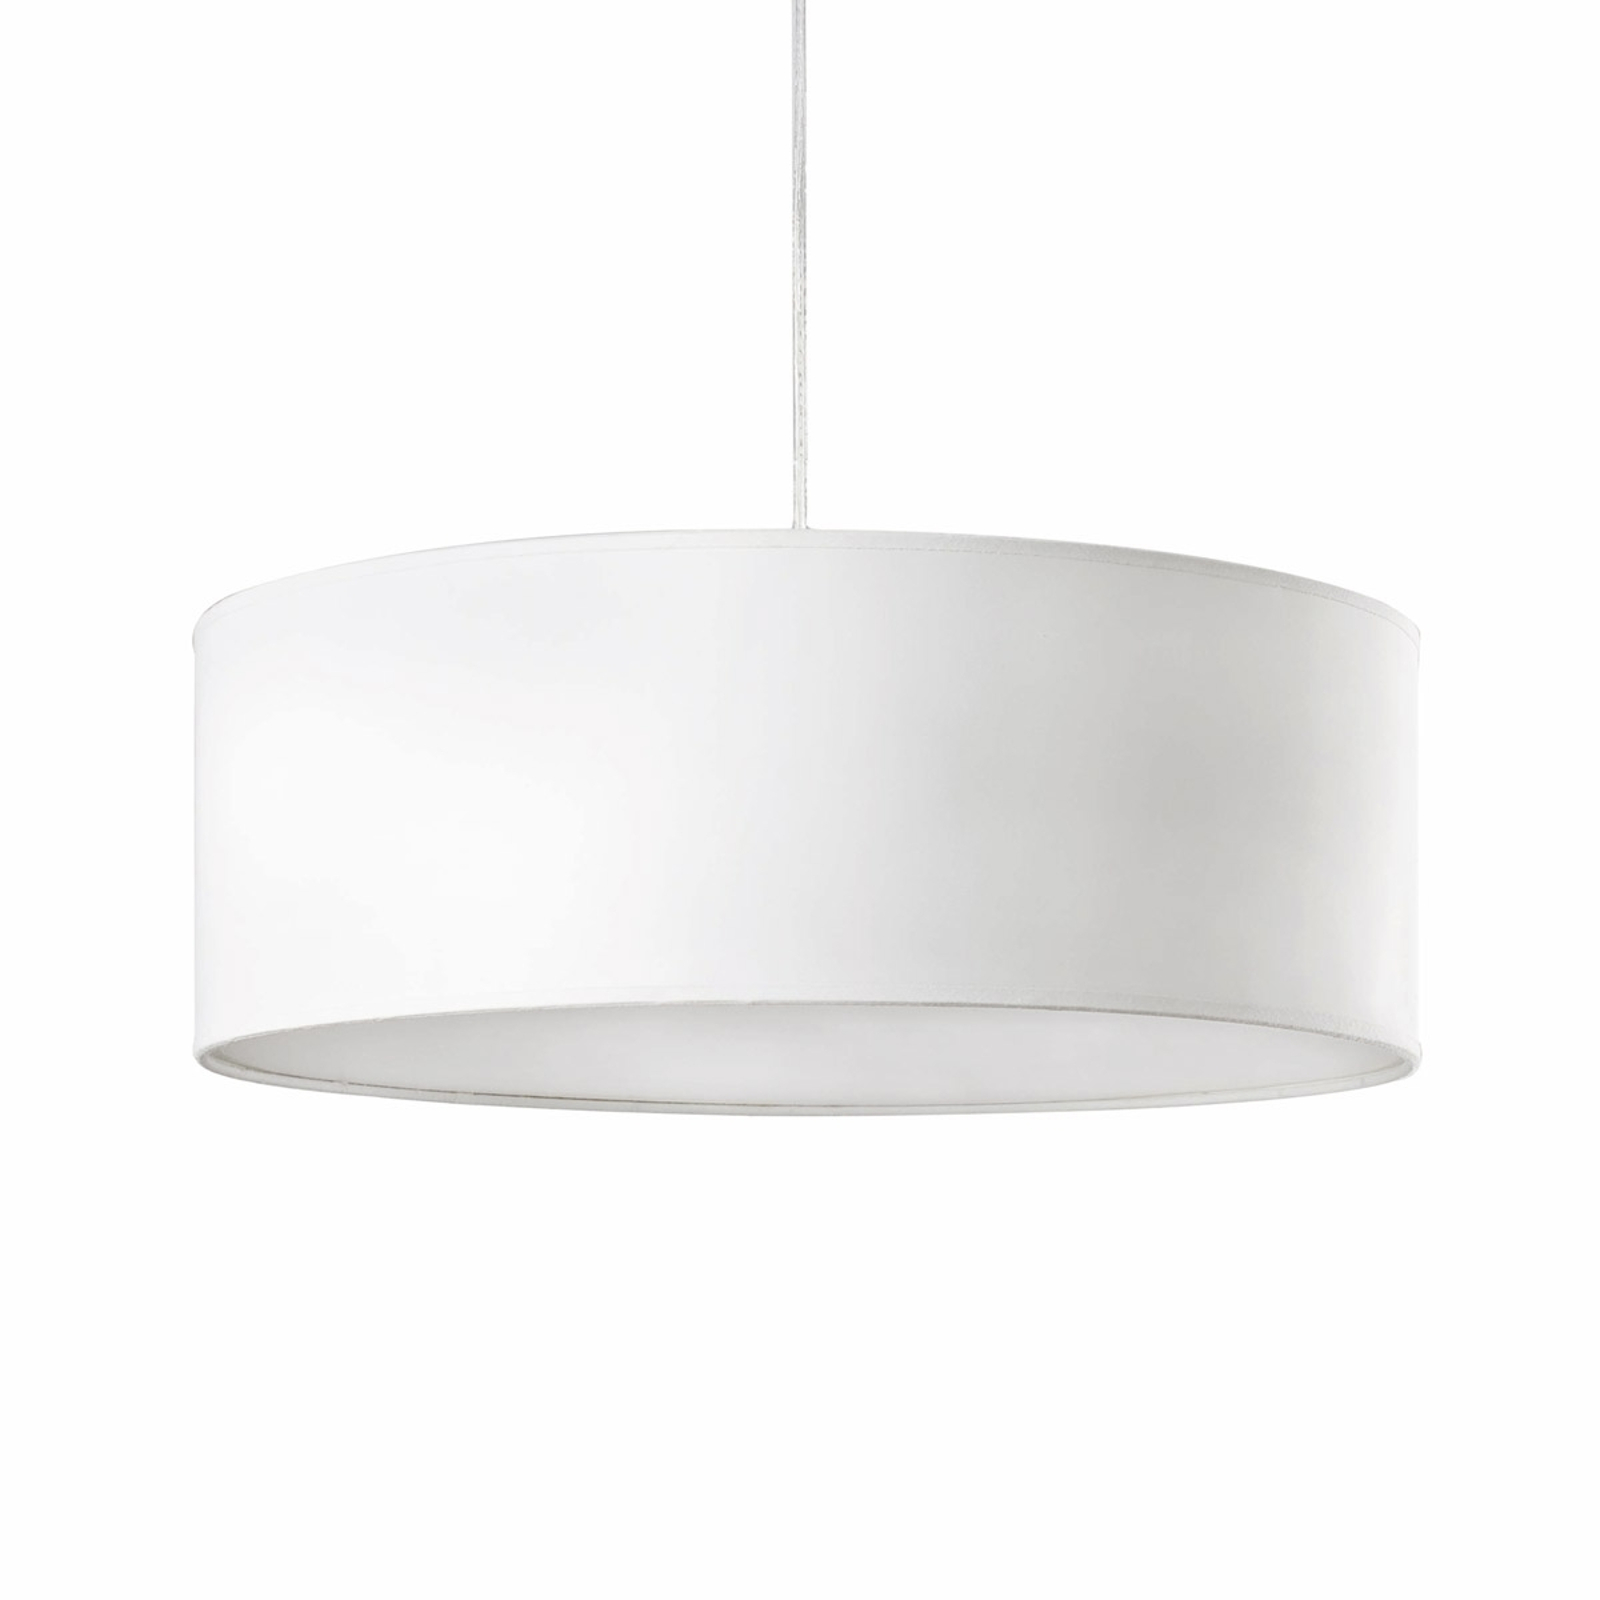 Suspension moderne SEVEN blanc